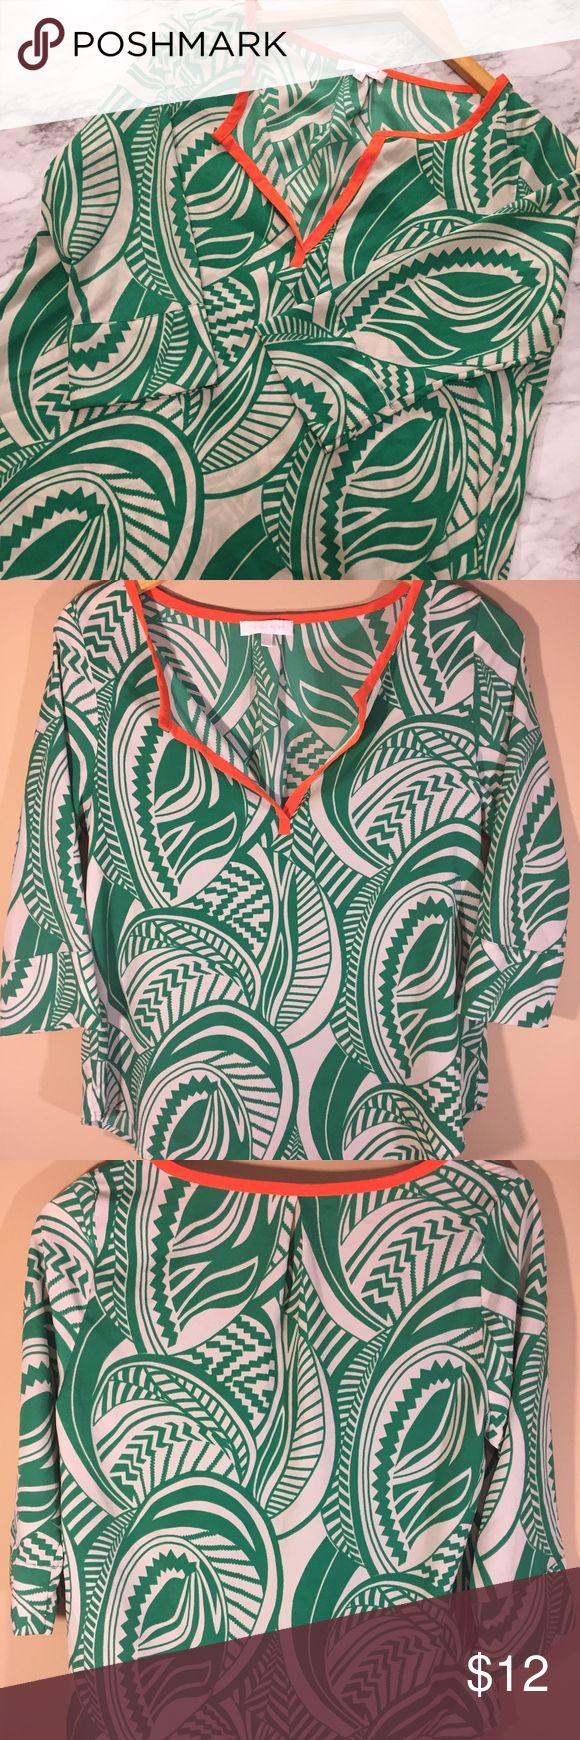 "GLAM Tropical Print Top Green Orange Semi-Sheer Lightweight, bold print GLAM top. Bright green tropical feel print on a grey-ash taupe background with bright orange neckline. 3/4 sleeves with slight flare at the cuff.  In great pre-owned condition, minimal signs of wear.  Measurements (taken laying flat) Underarm to underarm: 18"" Length: 24"" GLAM Tops Blouses"